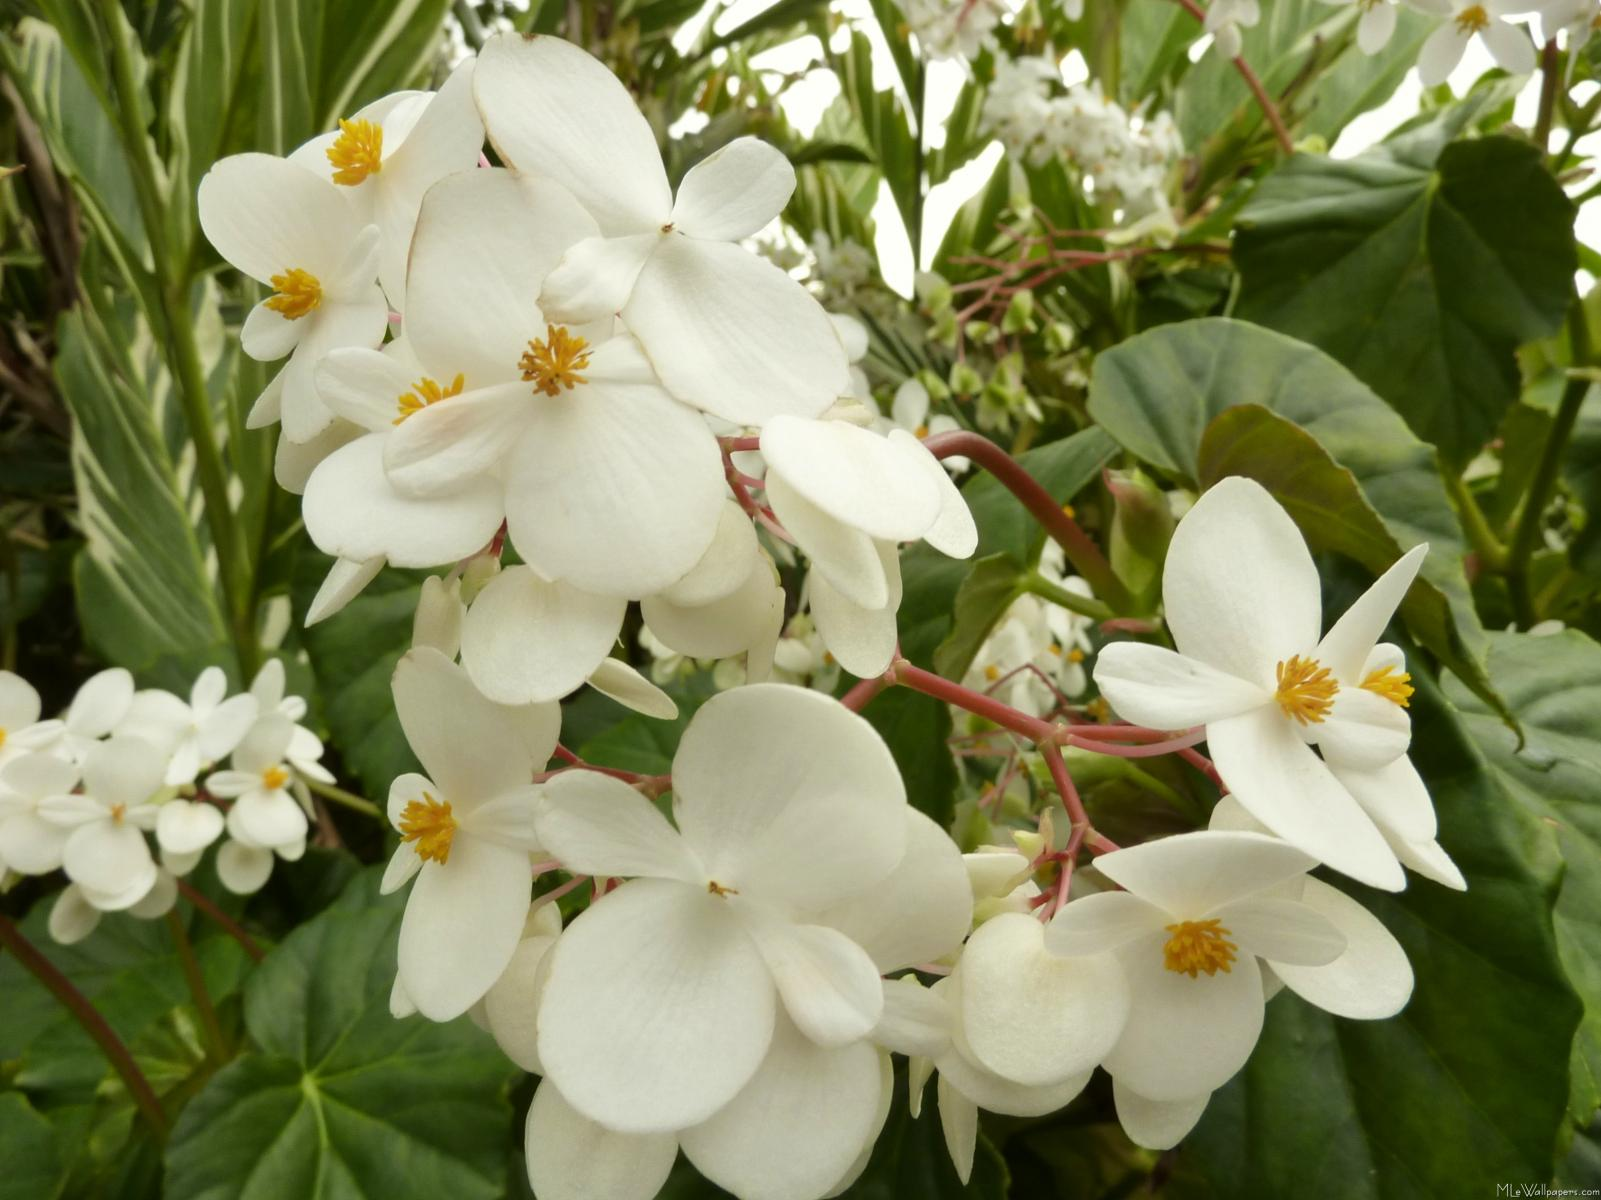 Mlewallpapers tropical white begonia flowers tropical white begonia flowers click here to download the full size 1601x1200 image mightylinksfo